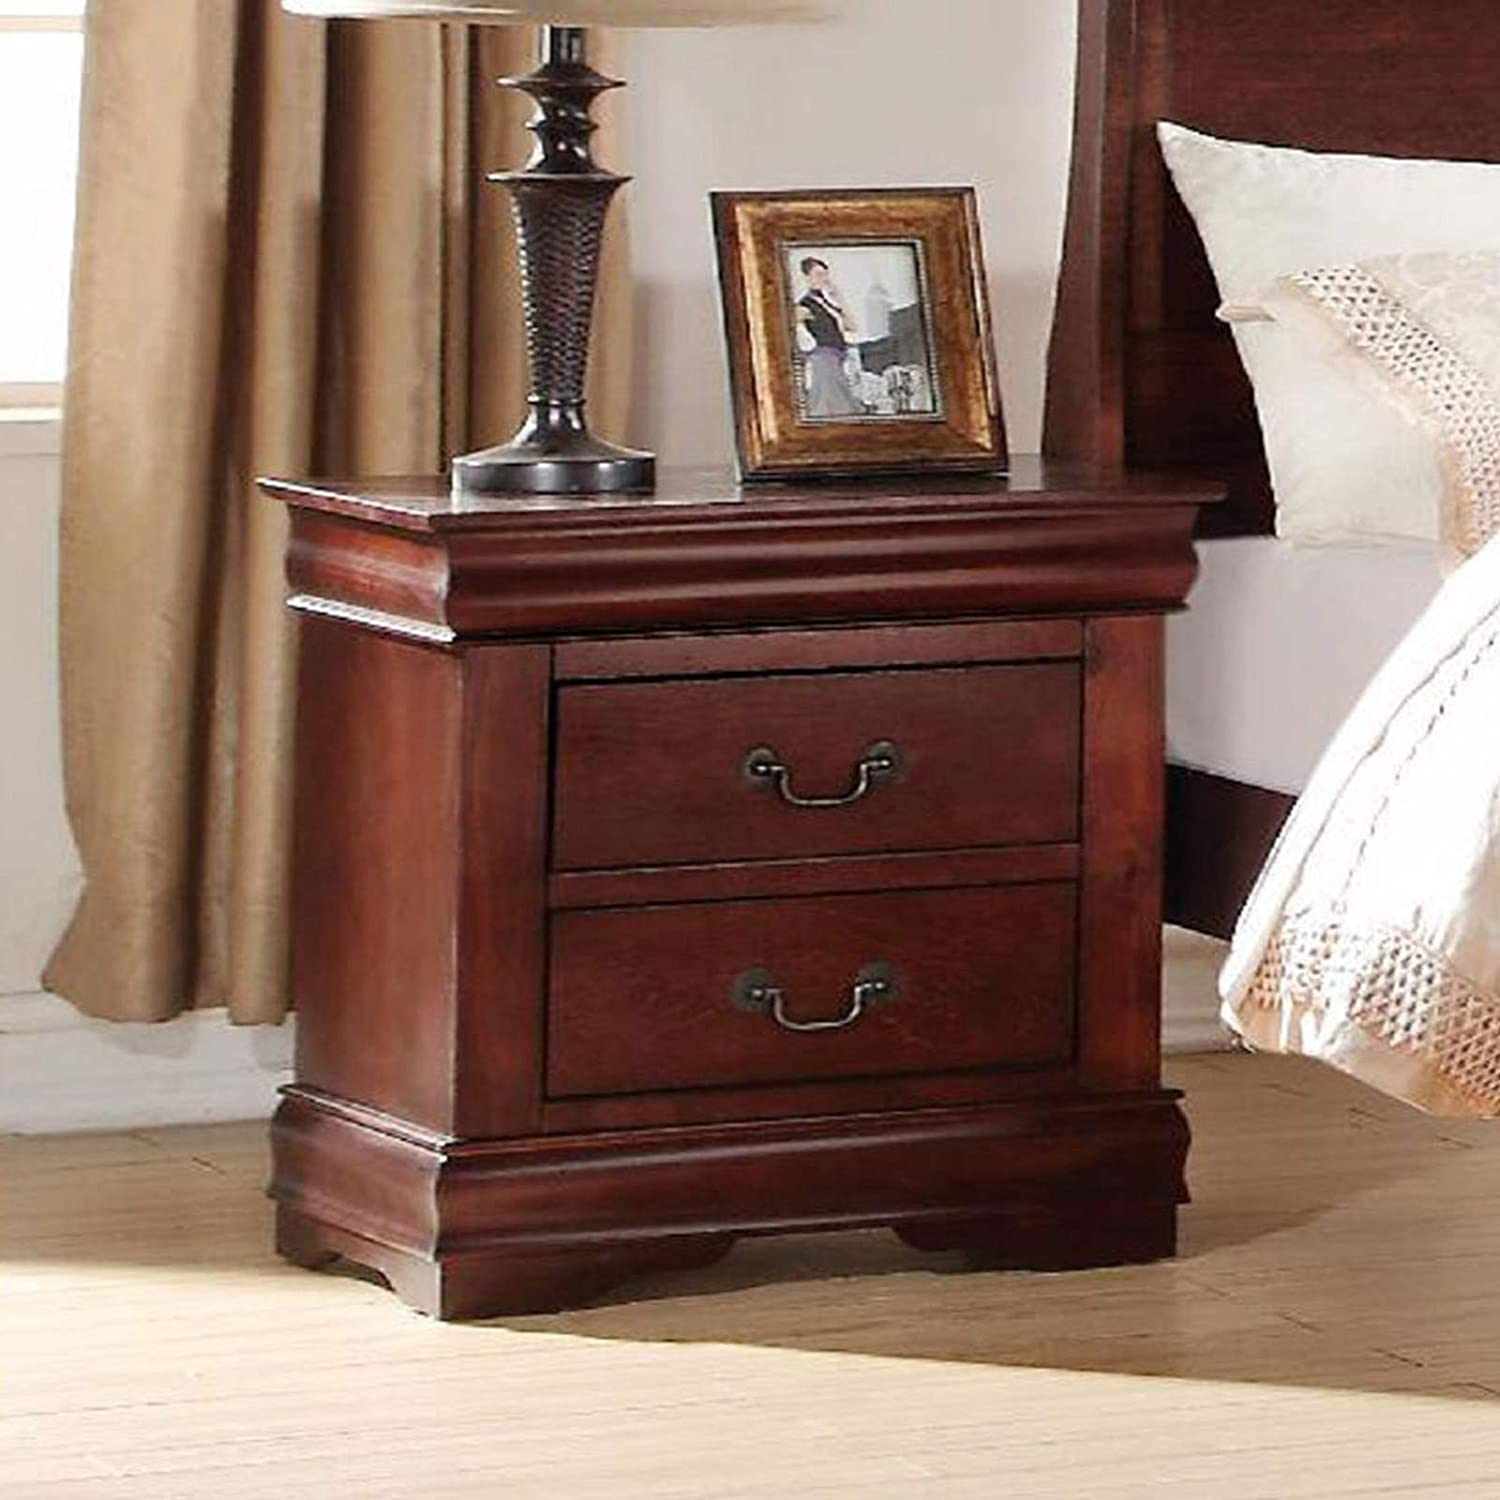 YIREAUD Outlet ☆ Free Shipping 2 Drawer Clearance SALE! Limited time! Nightstand Cherry Nightstands Night Wood Solid